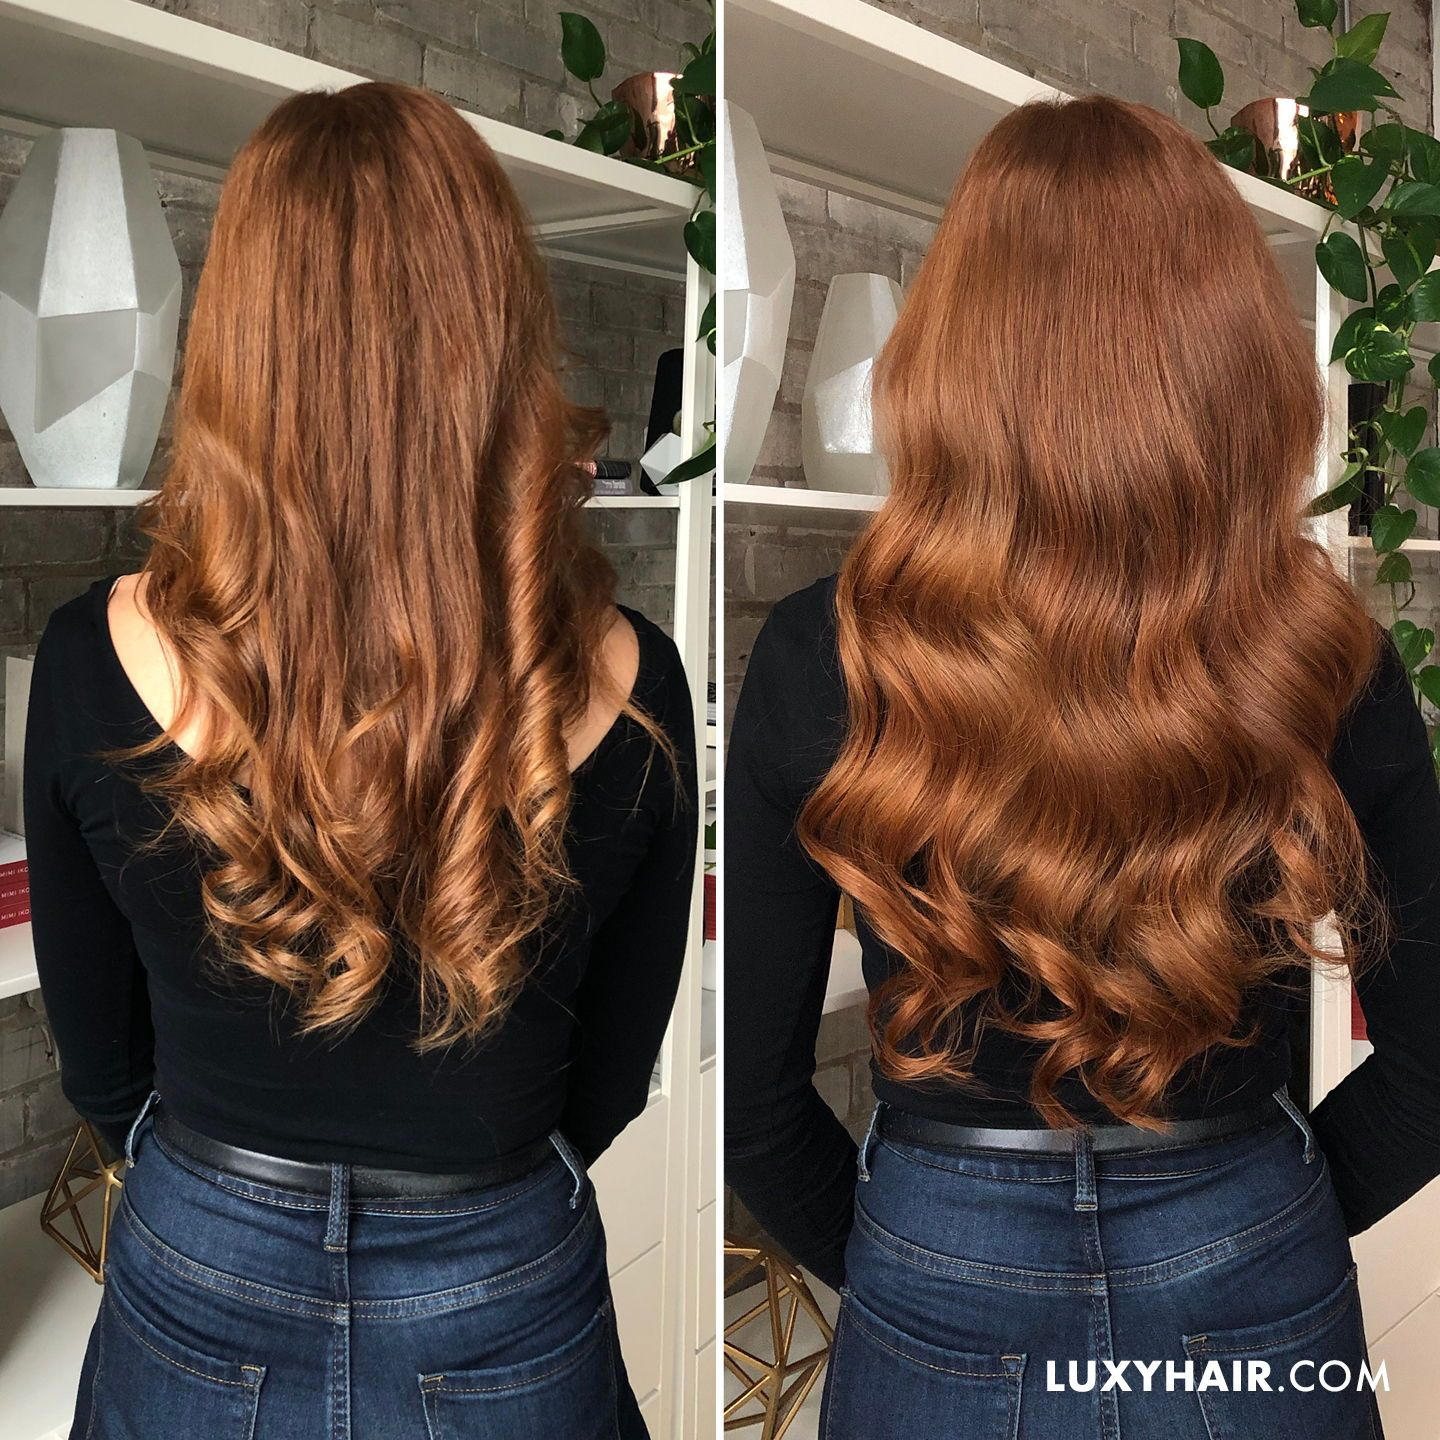 20 Classic Natural Red Clip Ins 20 160g With Images Natural Red Hair Red Hair Color